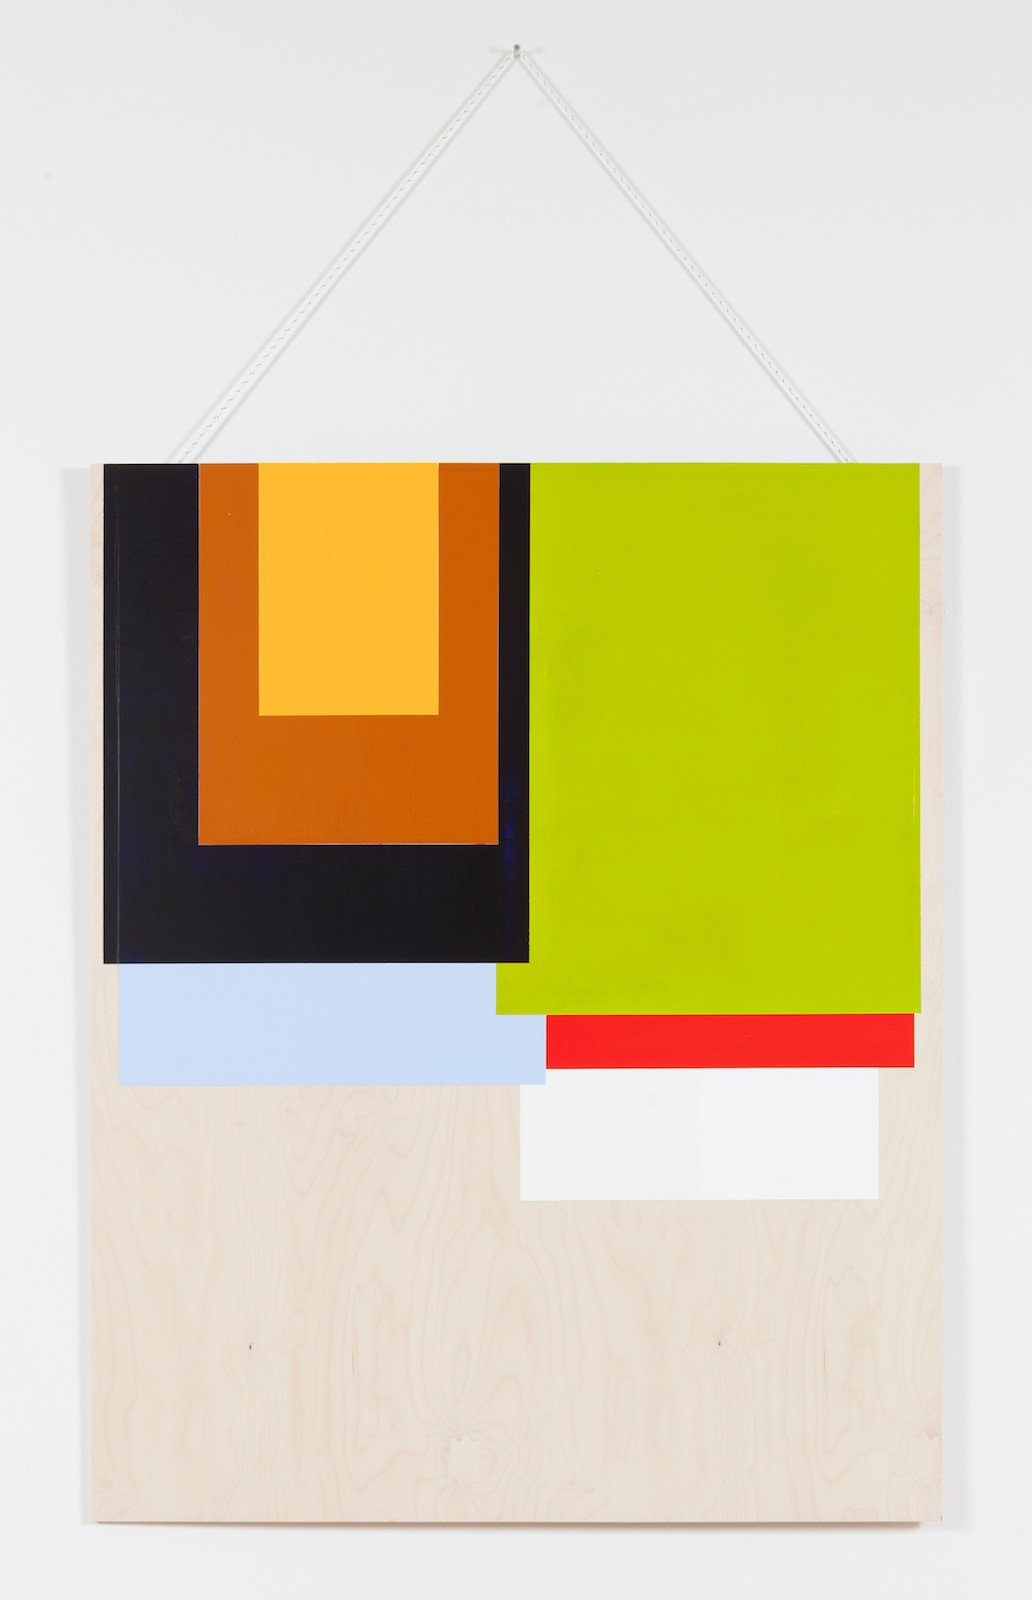 Collected colors #1, 2015, acrylic and wax on birch plywood, nylon thread, 125 x 100 x 0,9 cm